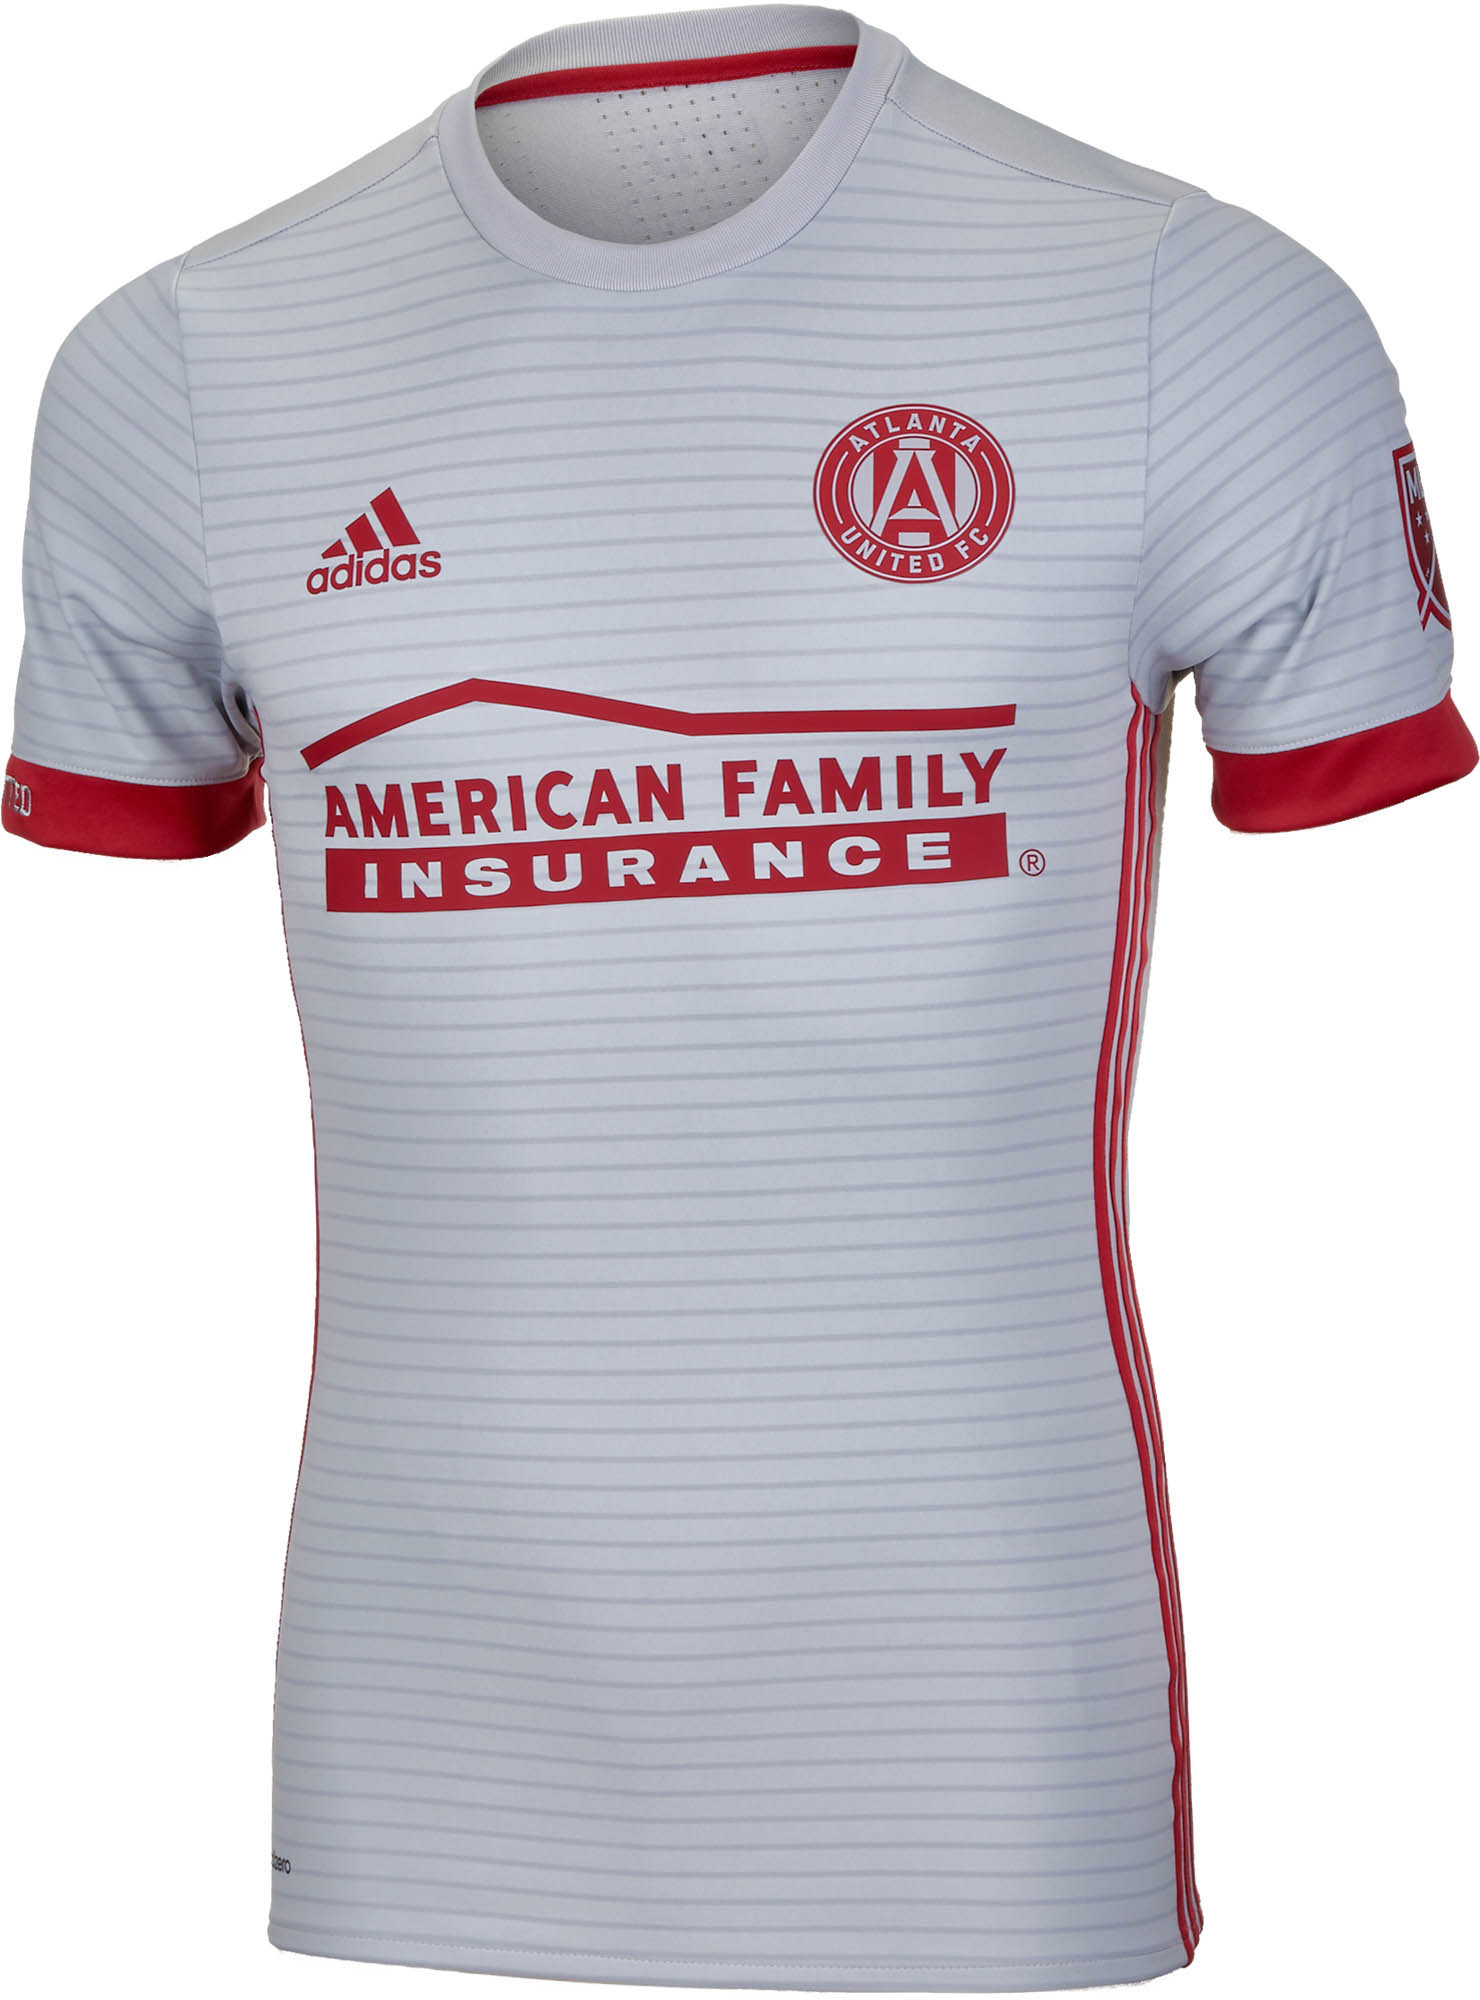 best service 65310 e7104 2017/18 adidas Atlanta United Authentic Away Jersey